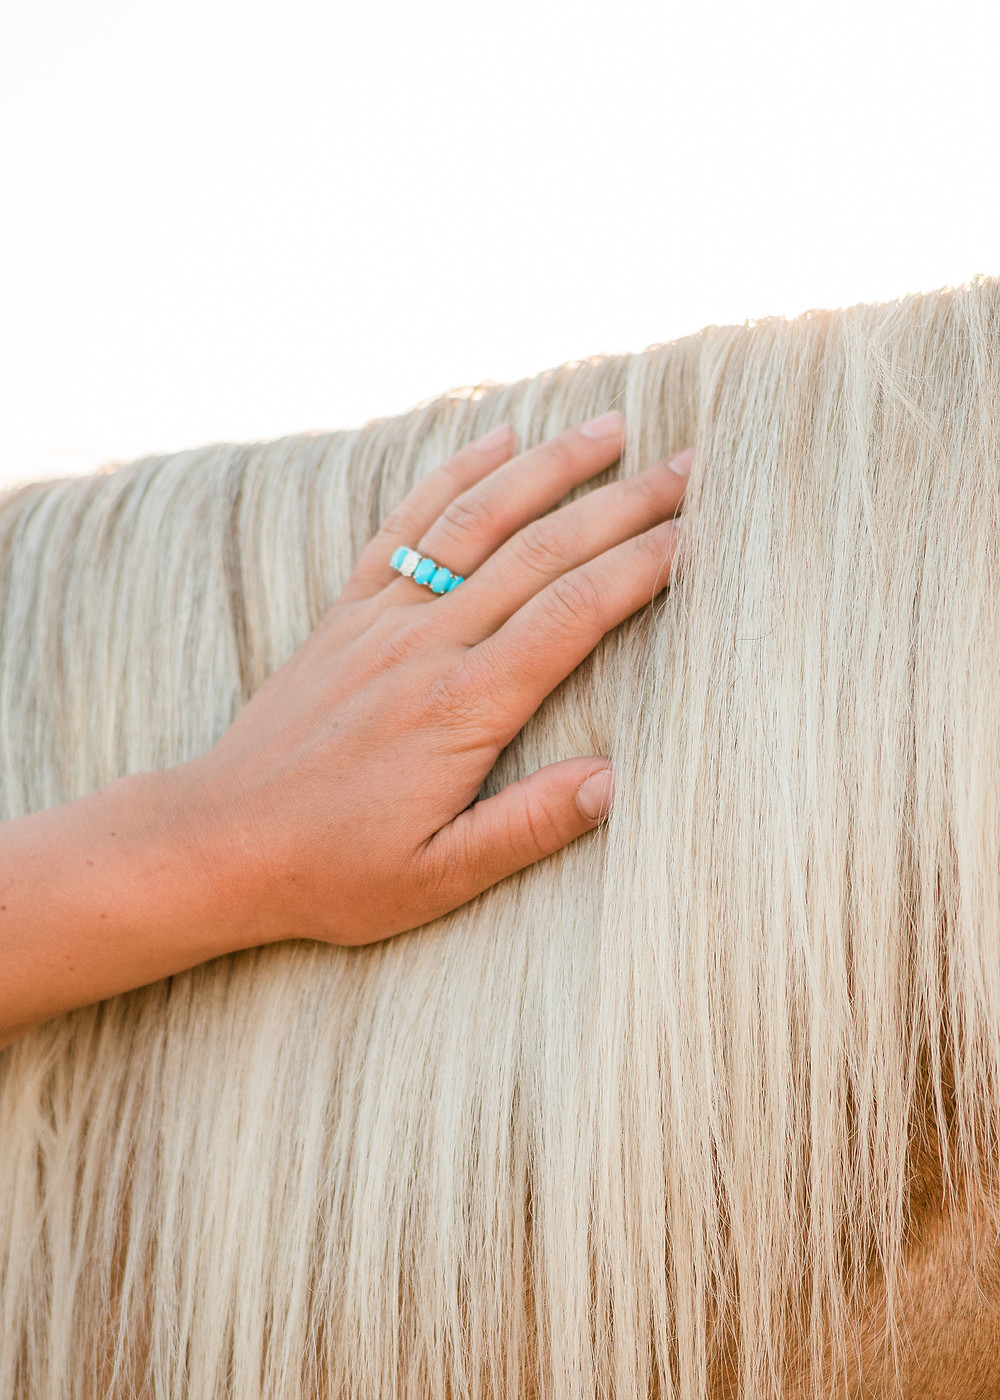 Katy's engagement ring